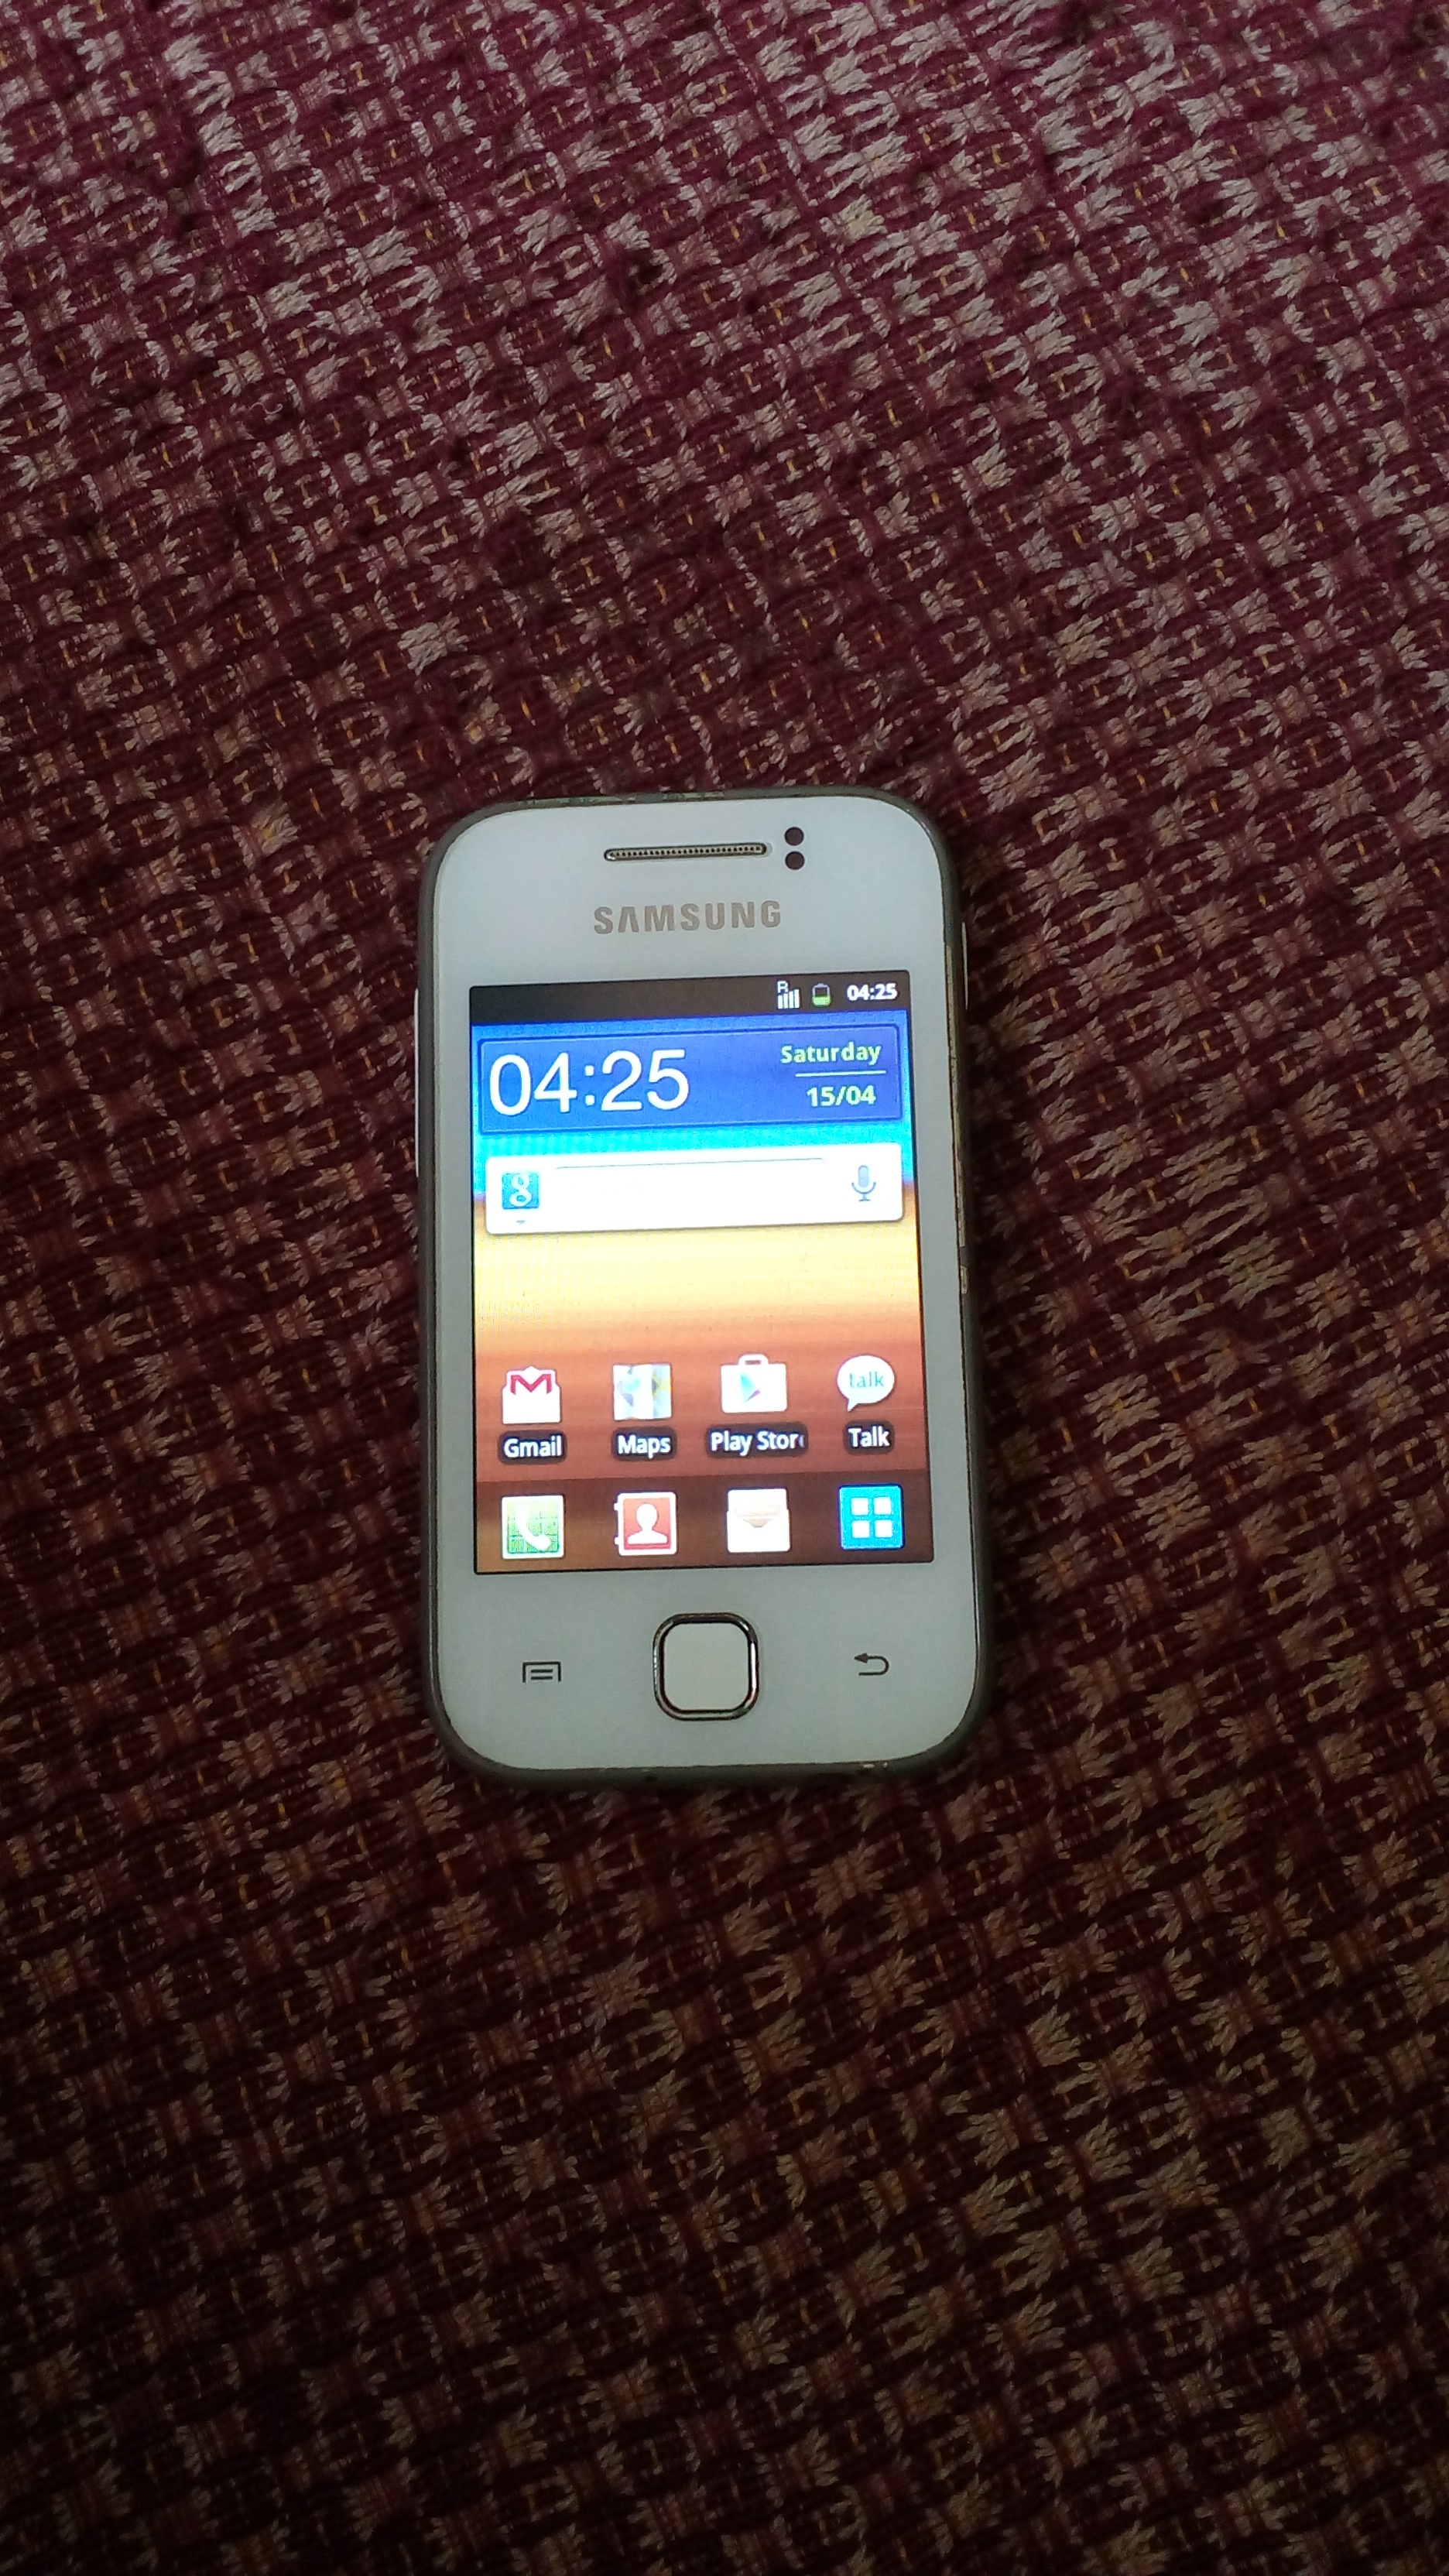 Samsung Galaxy Young S6310 User Review New Market Companies For Android Phone And To Since Googleplay Is Planning Stop There Version Below 444 Or Kitkat In Future